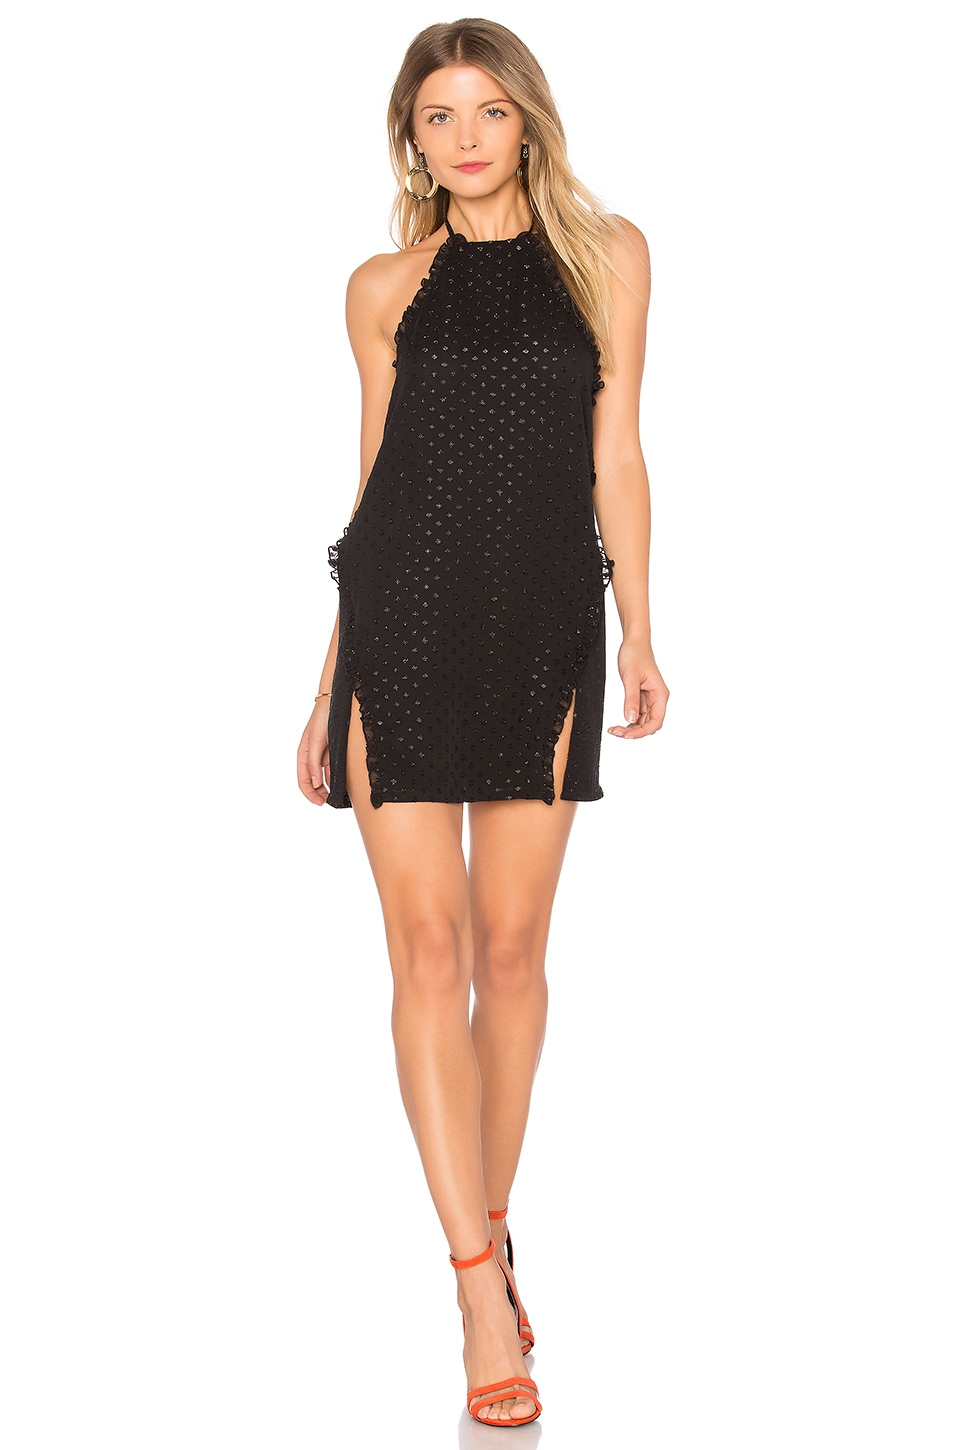 h:ours Maeva Dress in Black